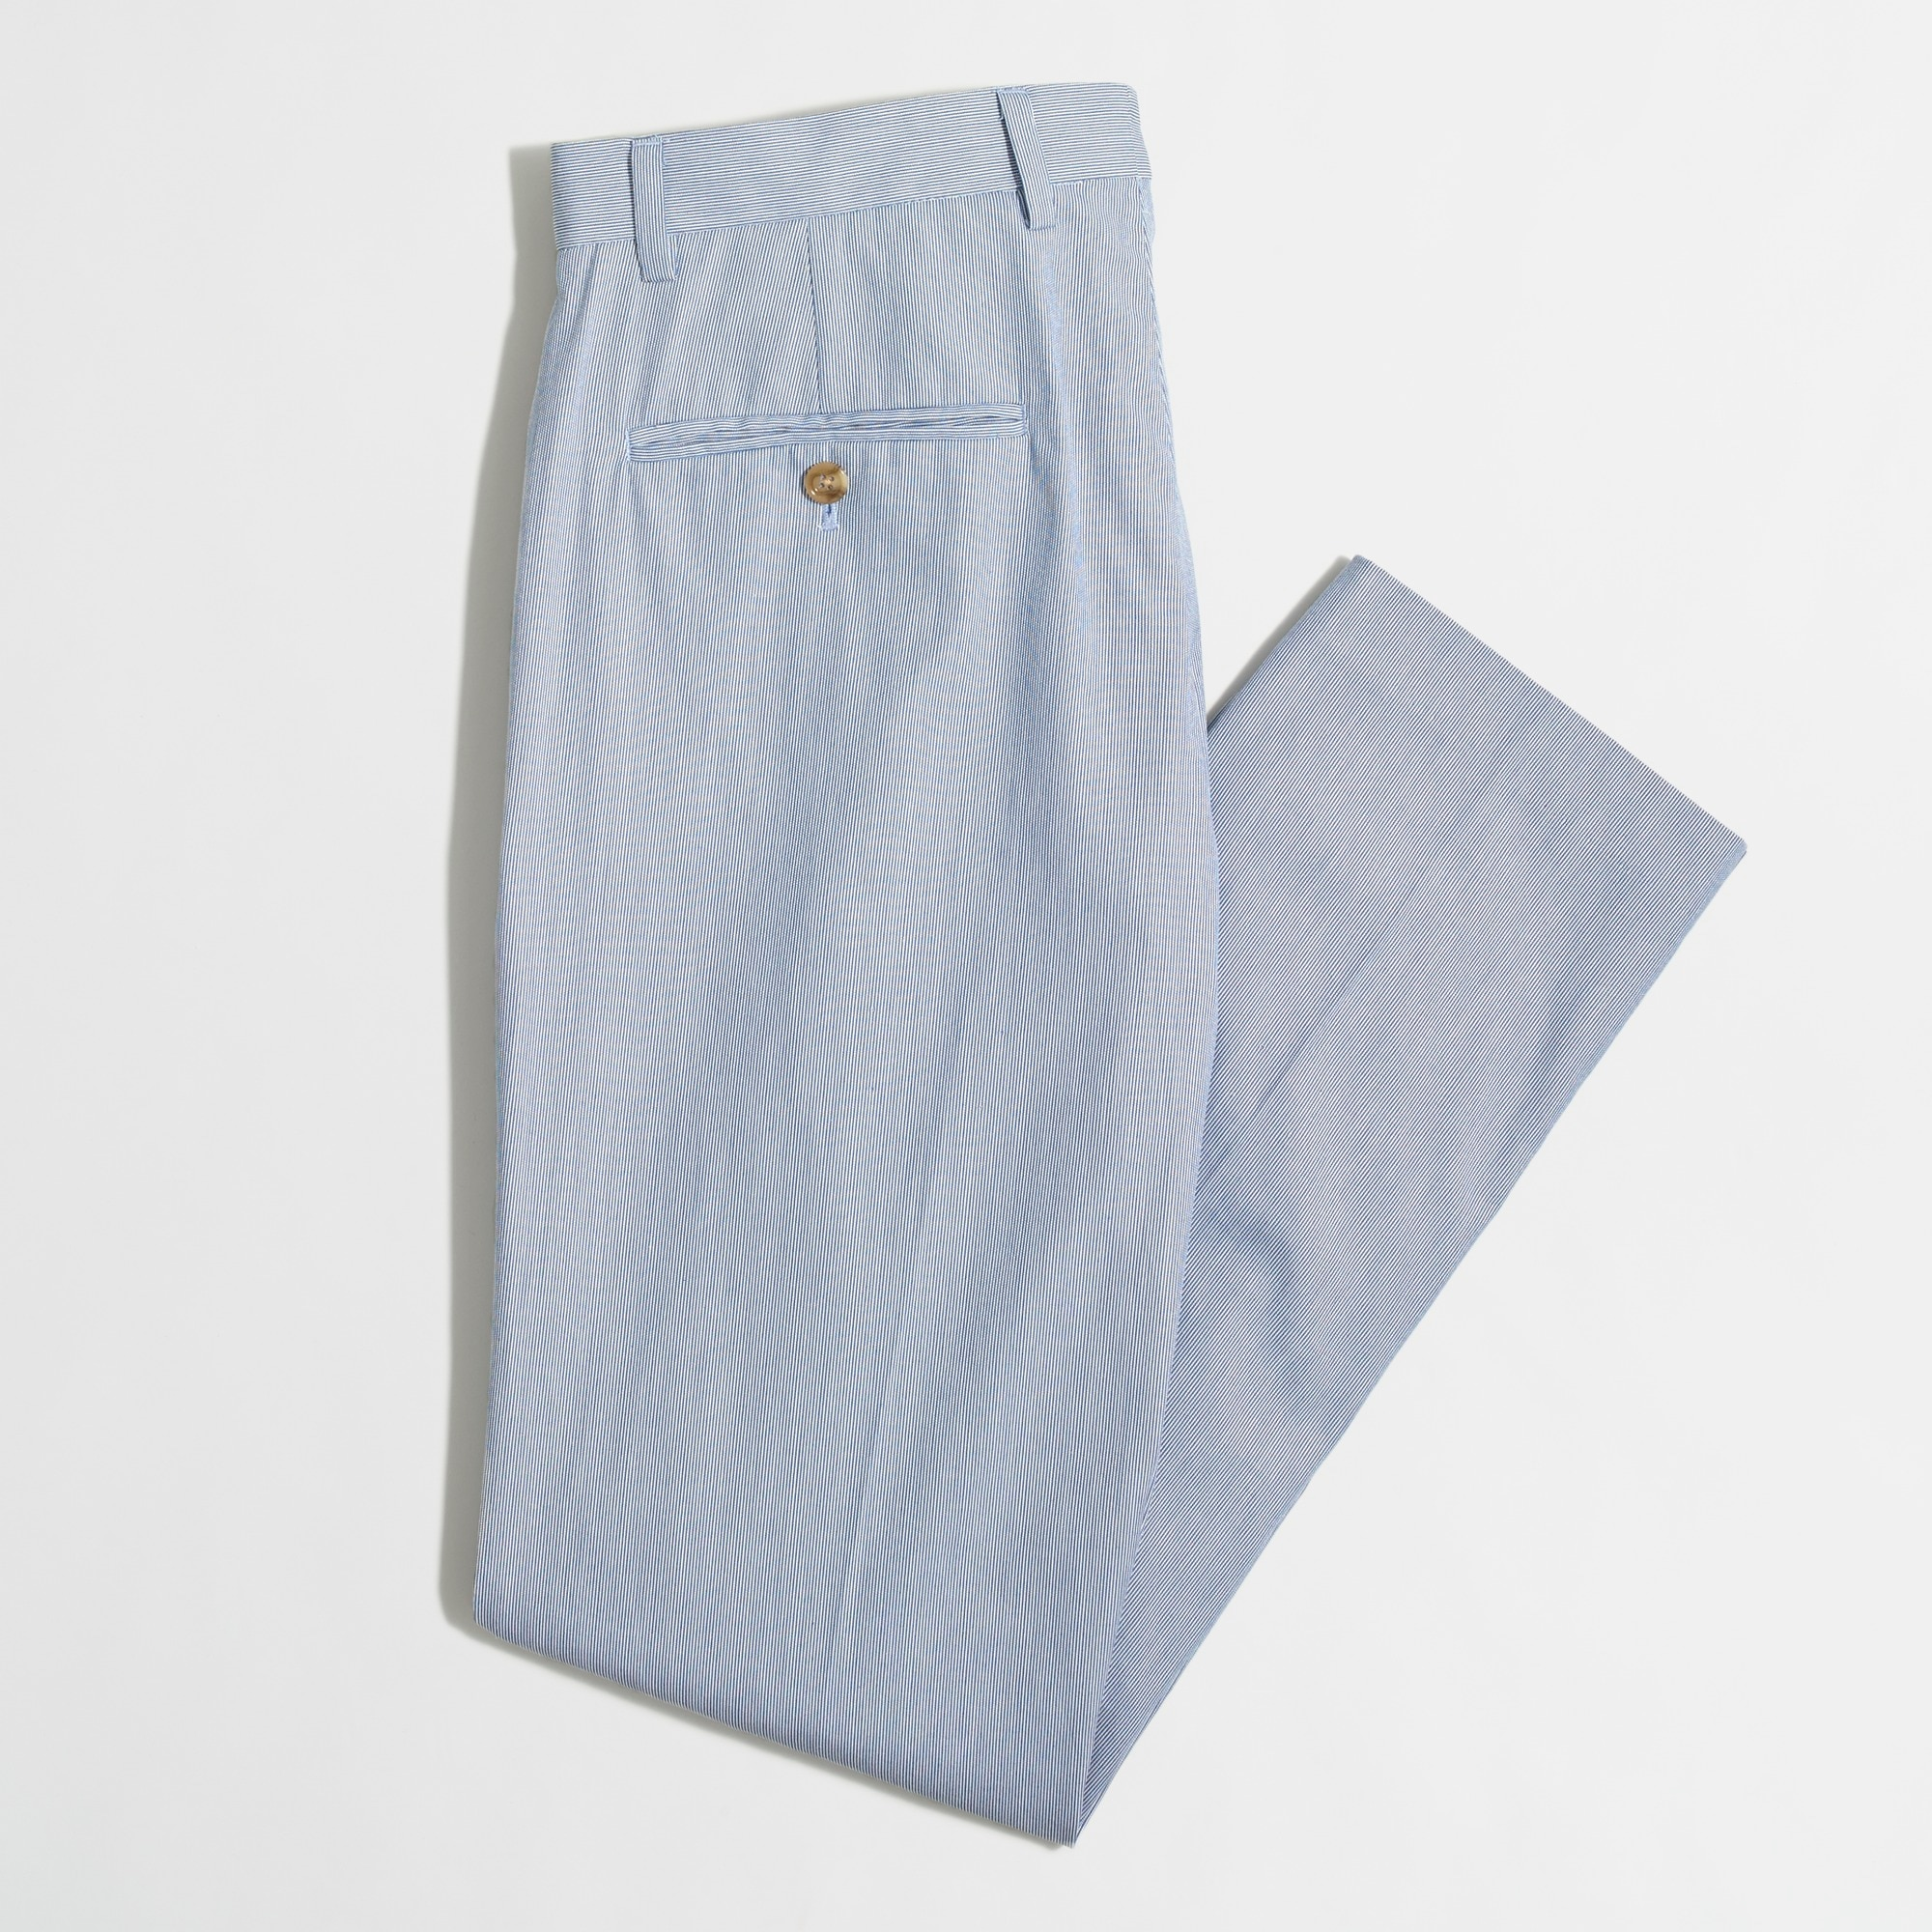 Image 1 for Slim Thompson suit pant in corded cotton